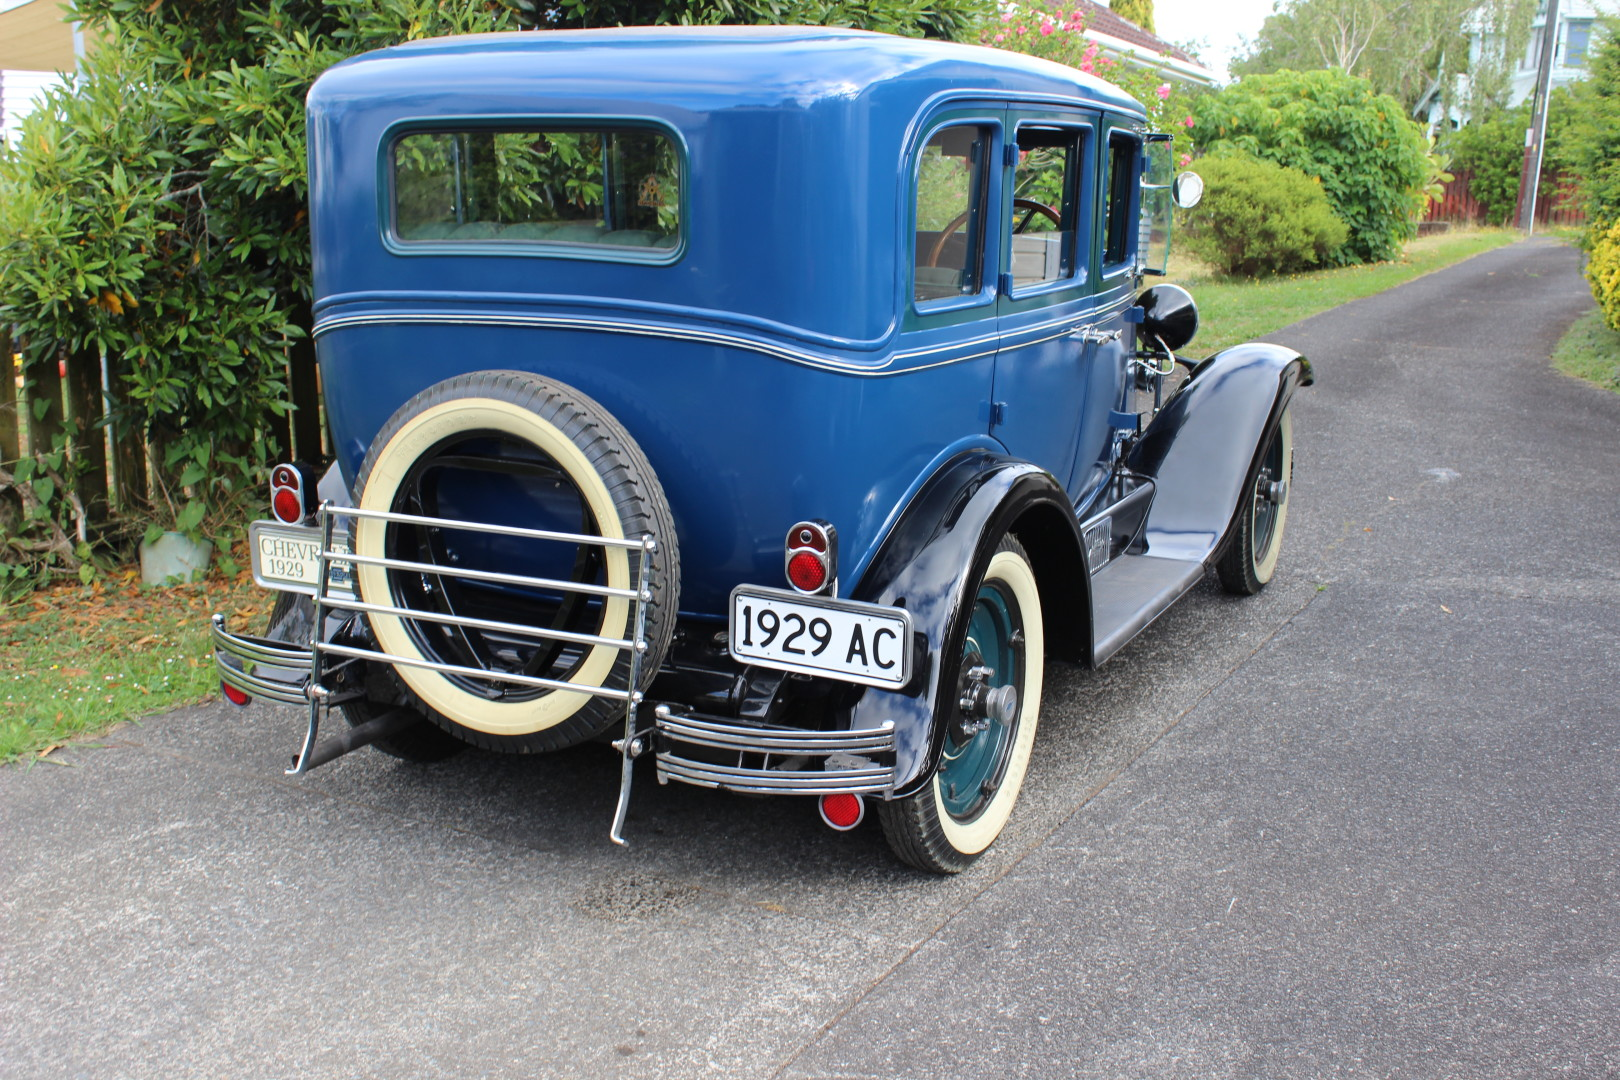 Chevrolet Ac International Custom Auto Builds Gallery Car Wiring Harness My 1929 Sedan Has Been A Complete Restoration Including Wooden Frame Removal And Panelbeating Of Rust Repairs New Full Hampton Coach